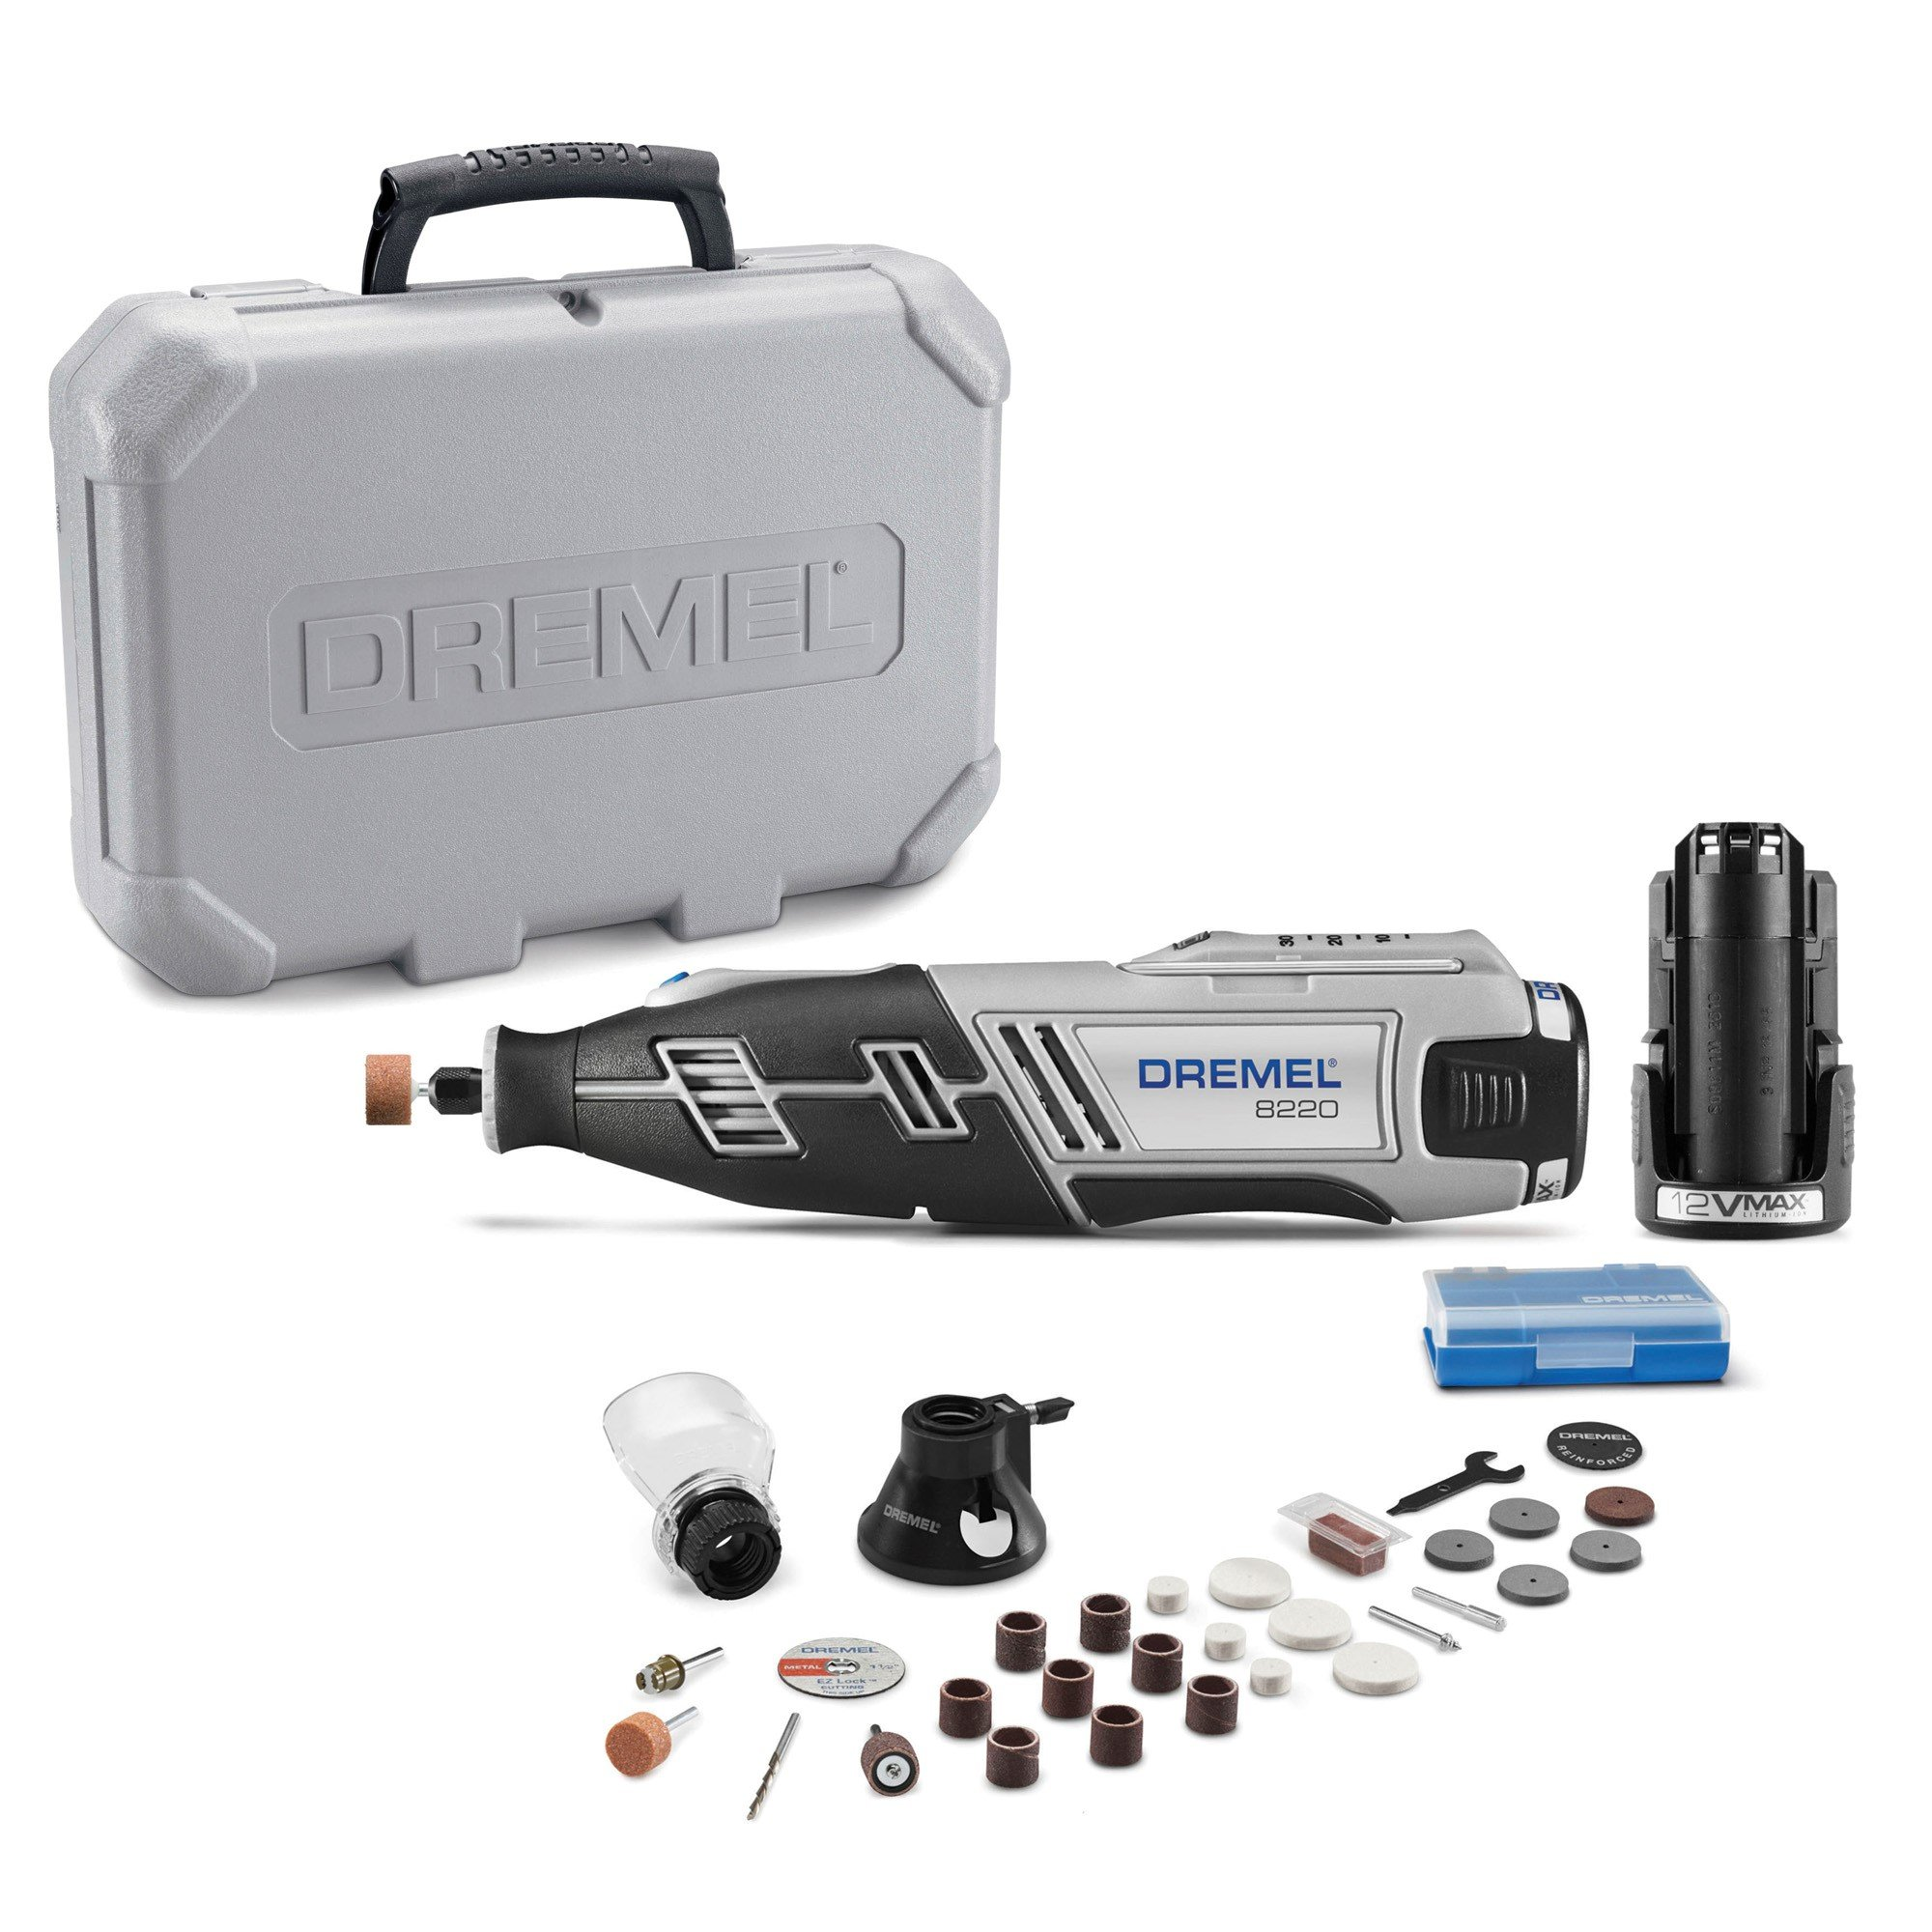 Dremel 8220-2/28 12-Volt Max Cordless Rotary Tool with 28 Accessories by Dremel